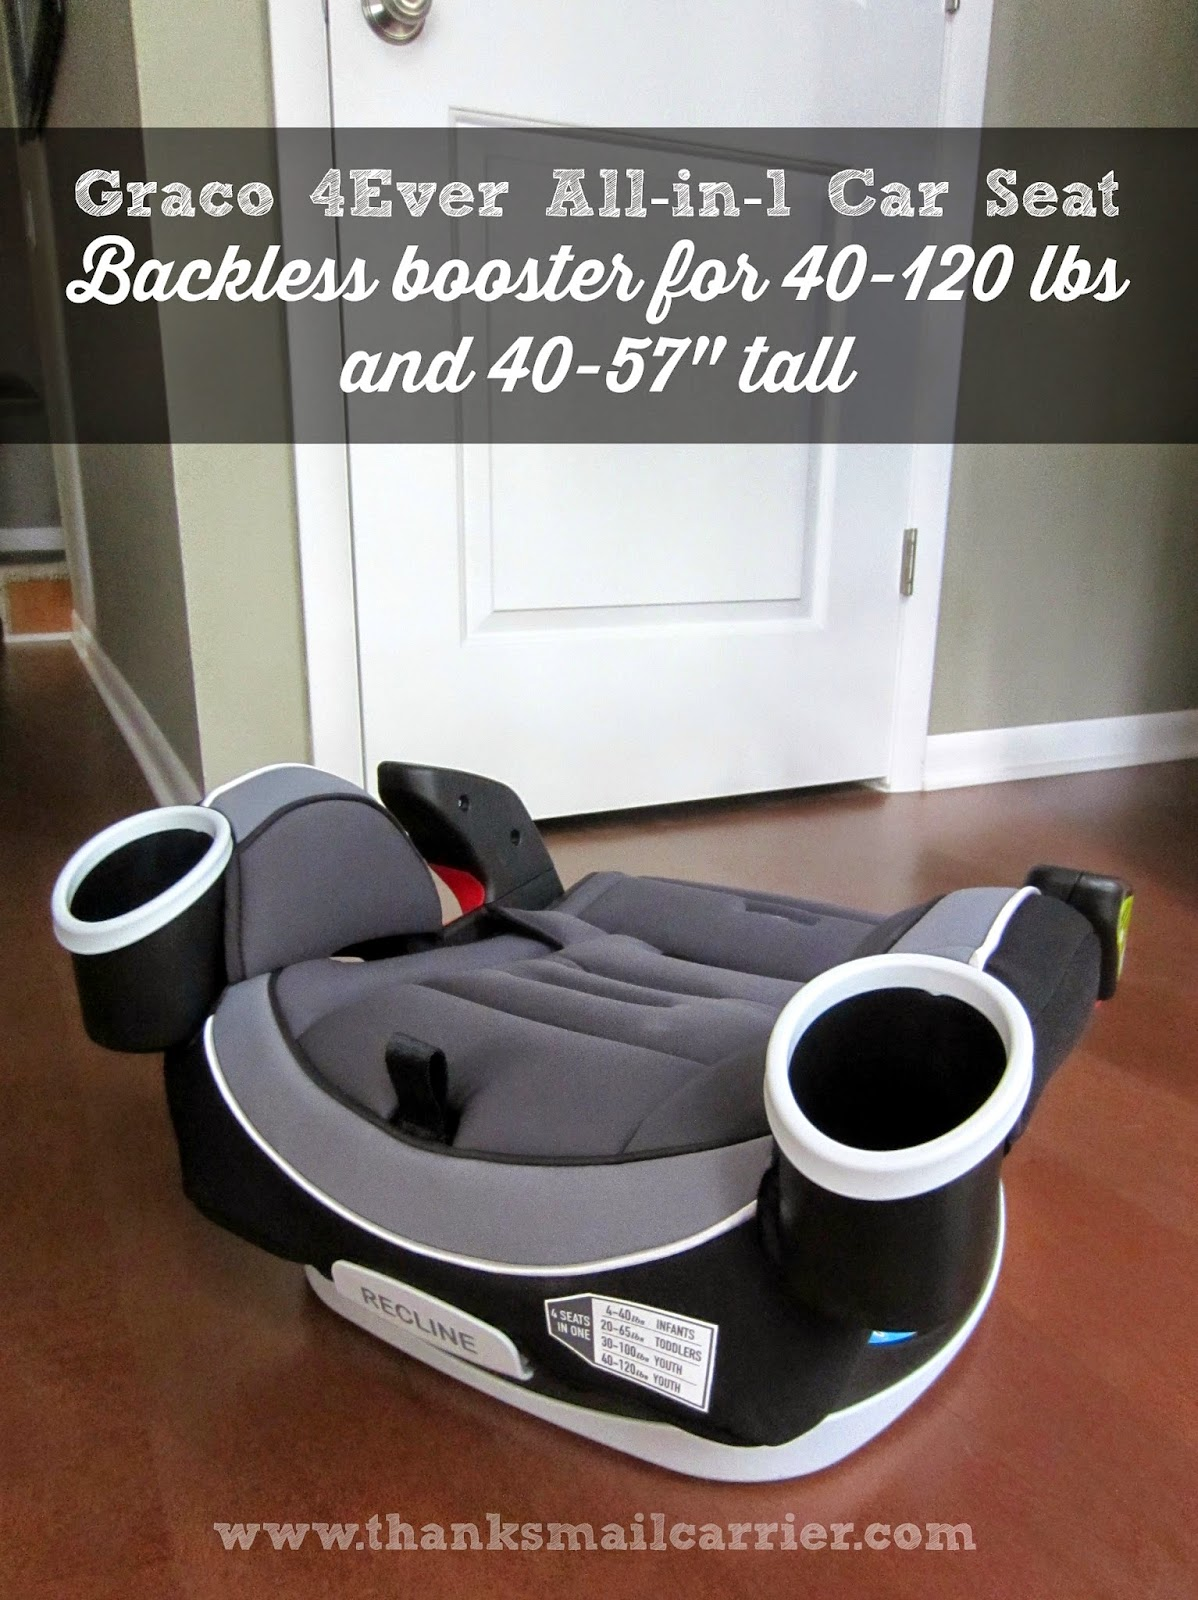 Graco 4Ever backless booster